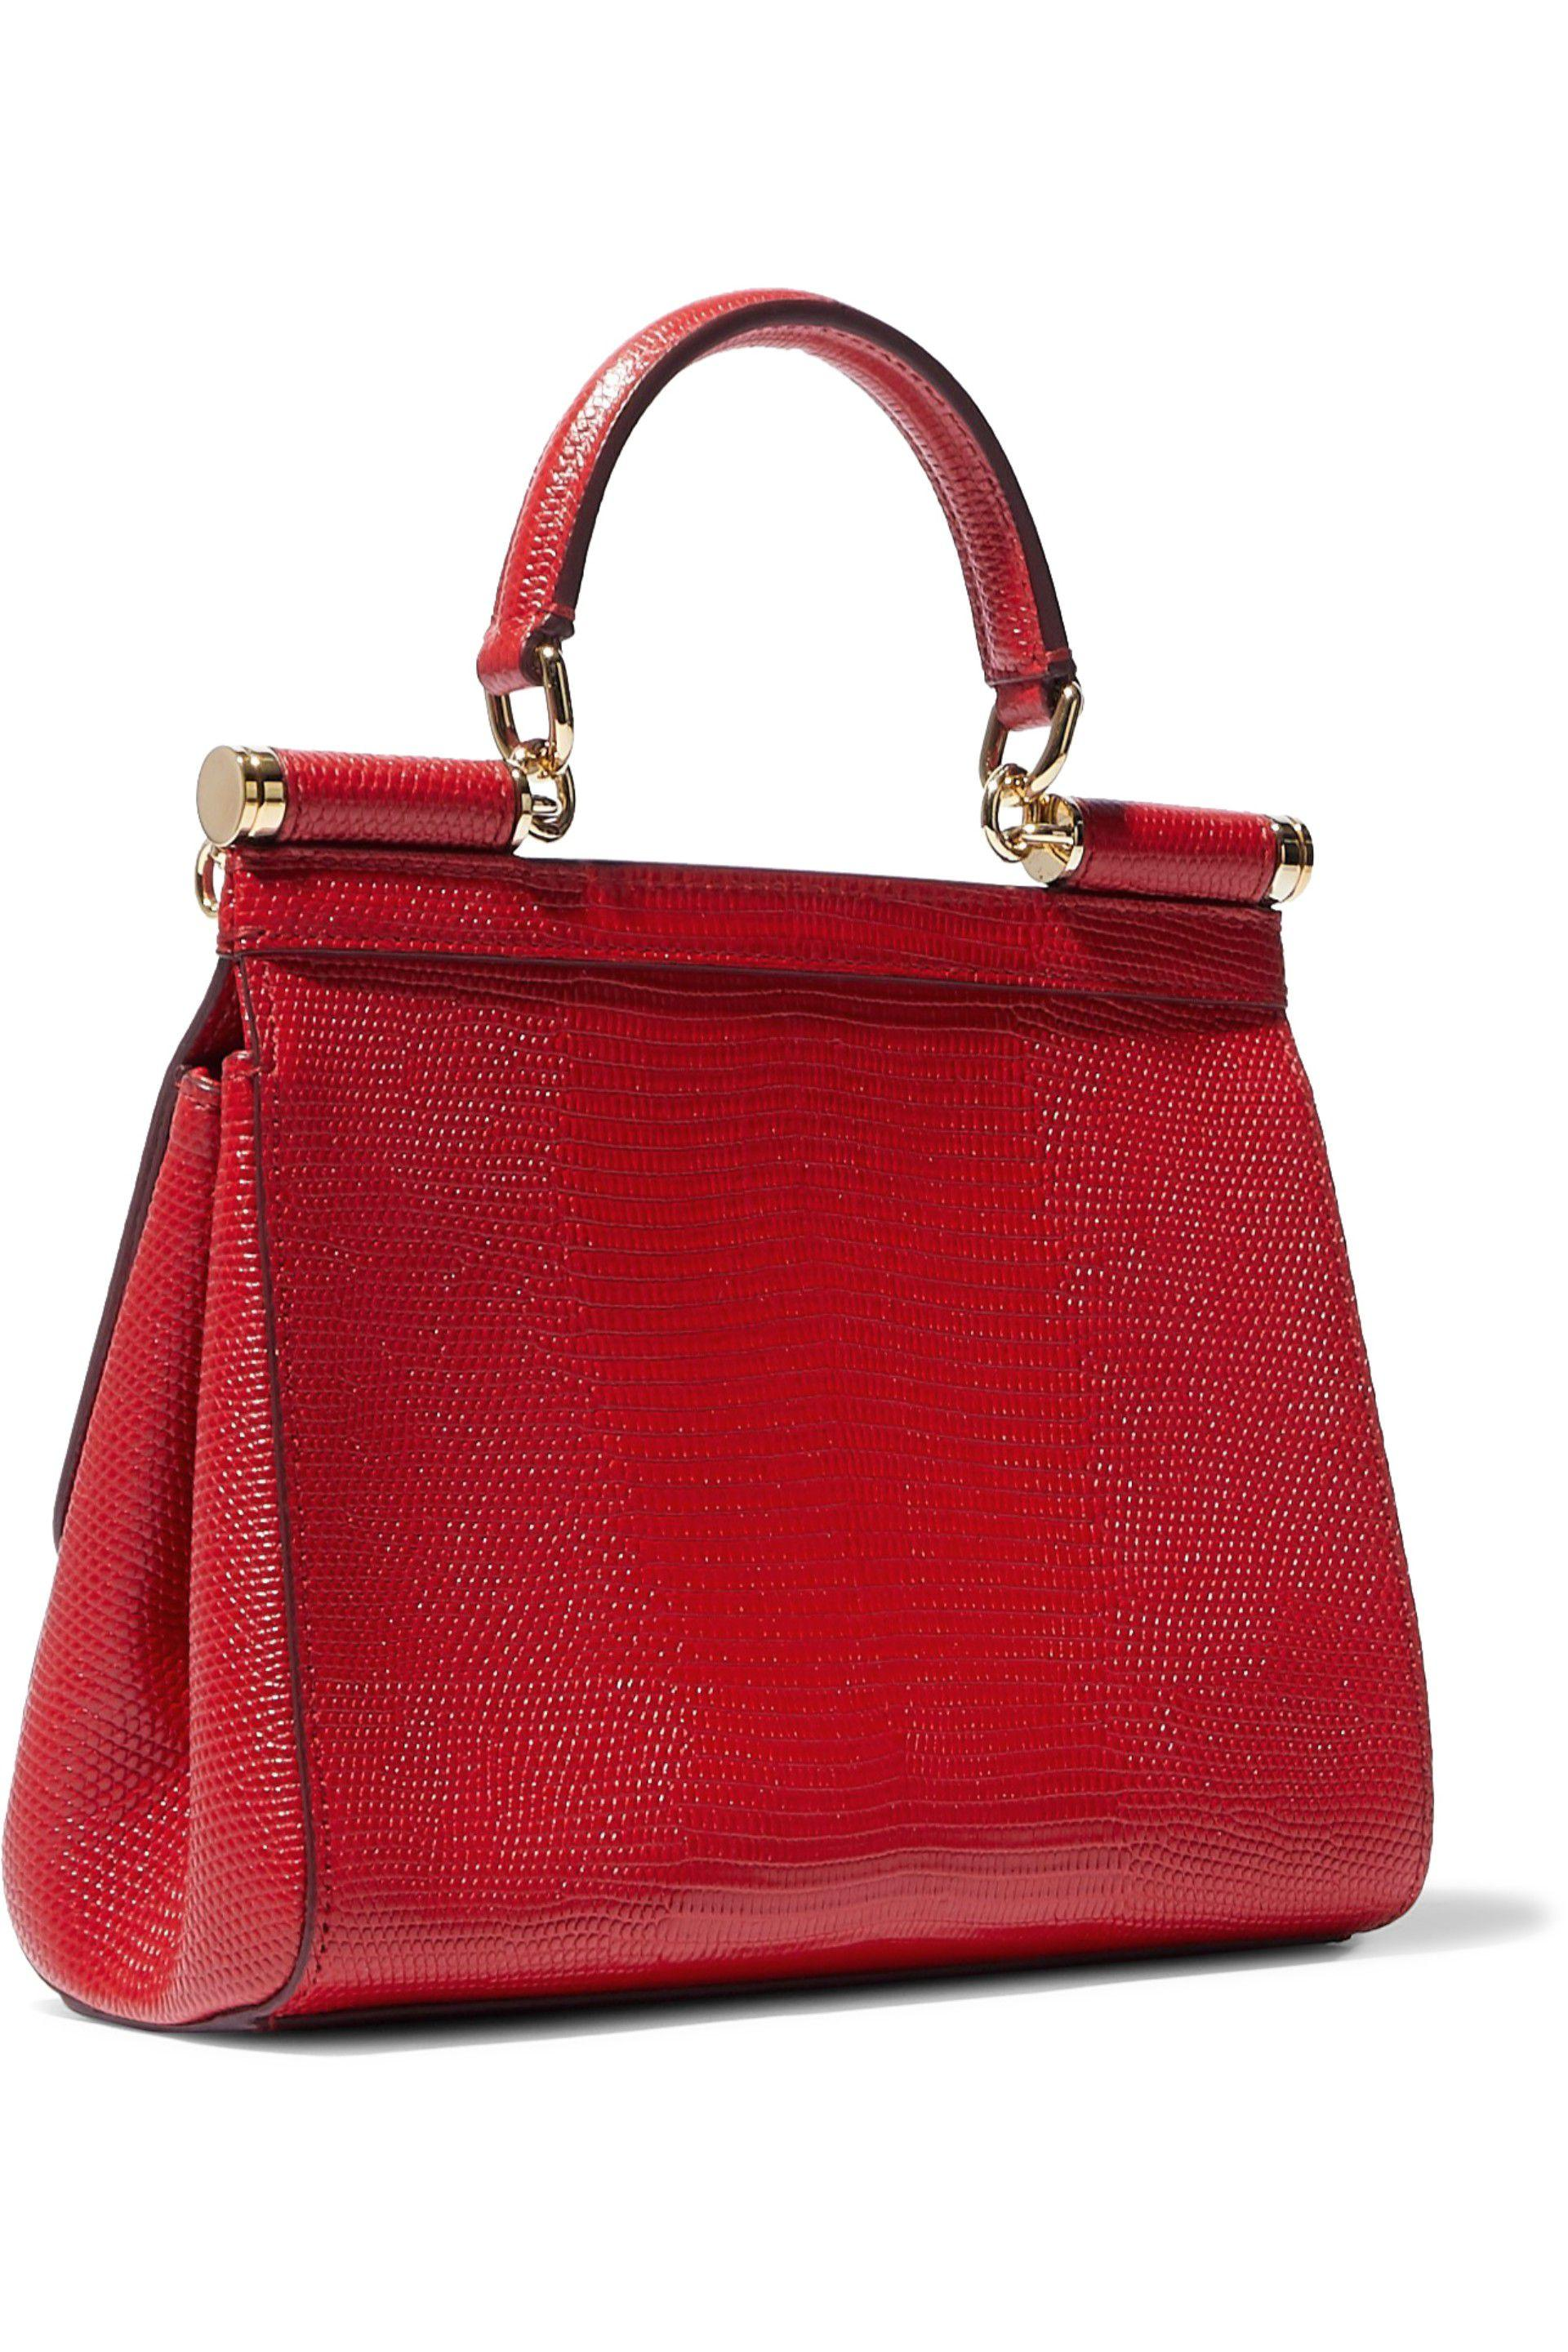 dca23d87 Dolce & Gabbana Woman Lizard-effect Leather Shoulder Bag Red in Red ...